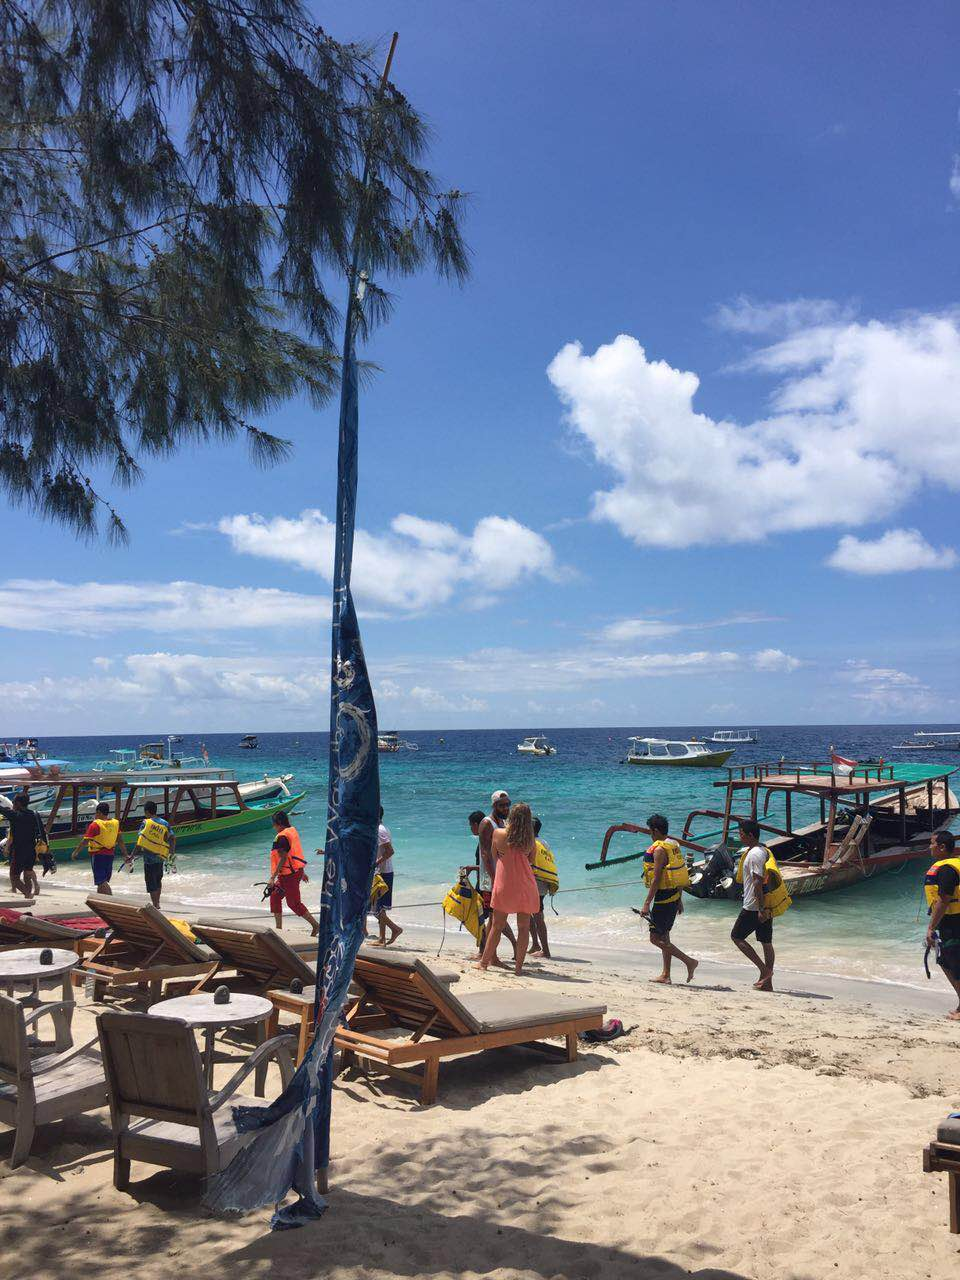 Hustle bustle of Gili